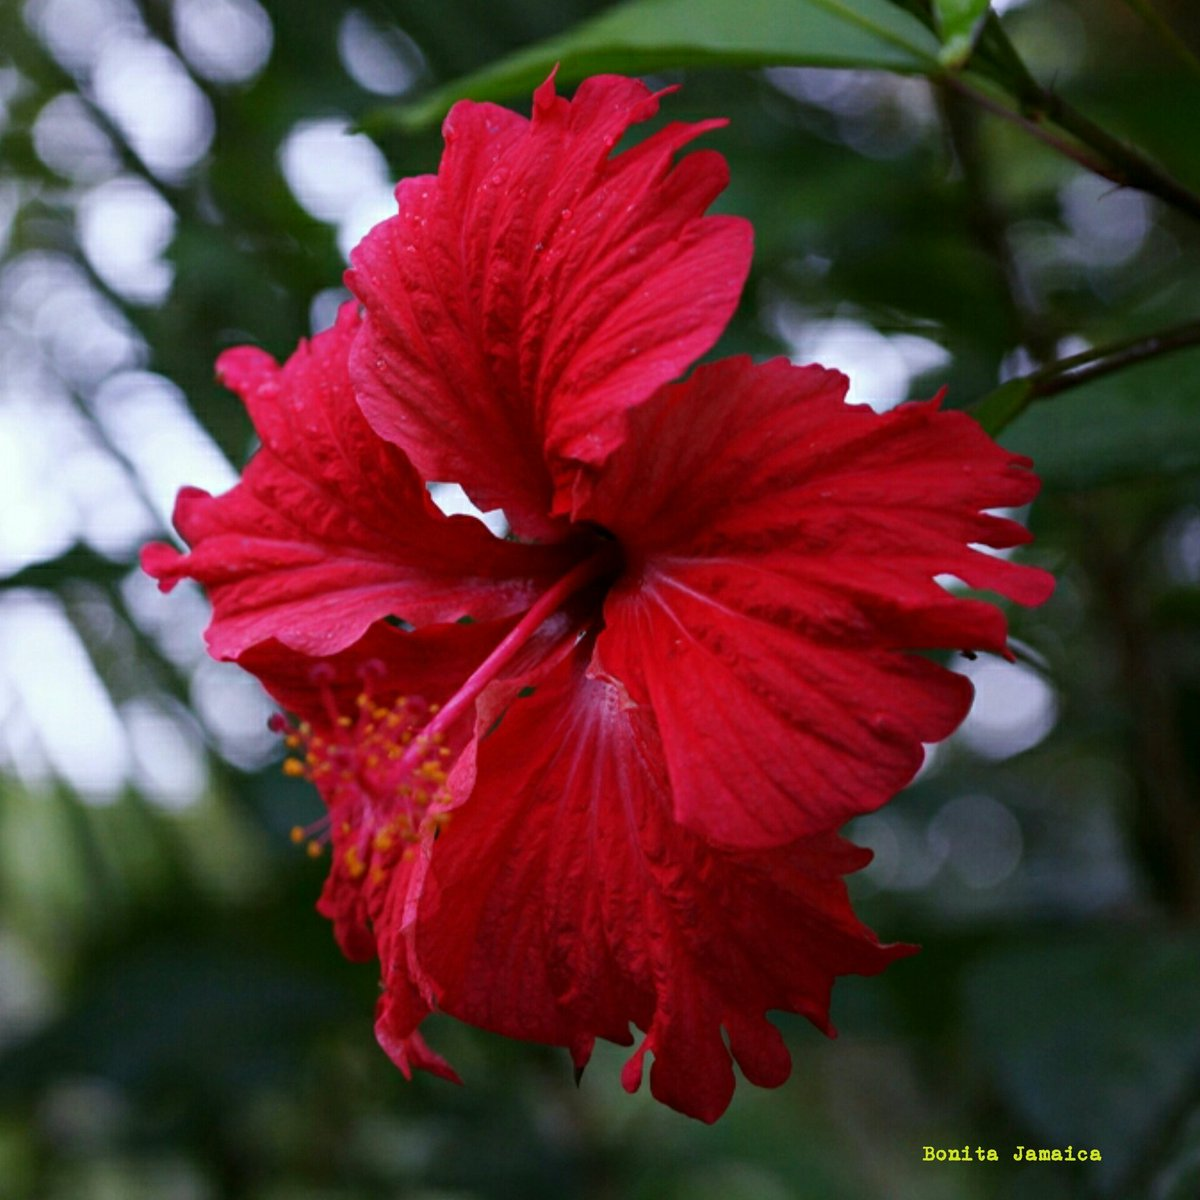 Jamaica diaspora ny on twitter rainforest red hibiscus the the prettiest things have been here we came and saw them travel jamaica nature hibiscus flower red httpst0jtc5gasui izmirmasajfo